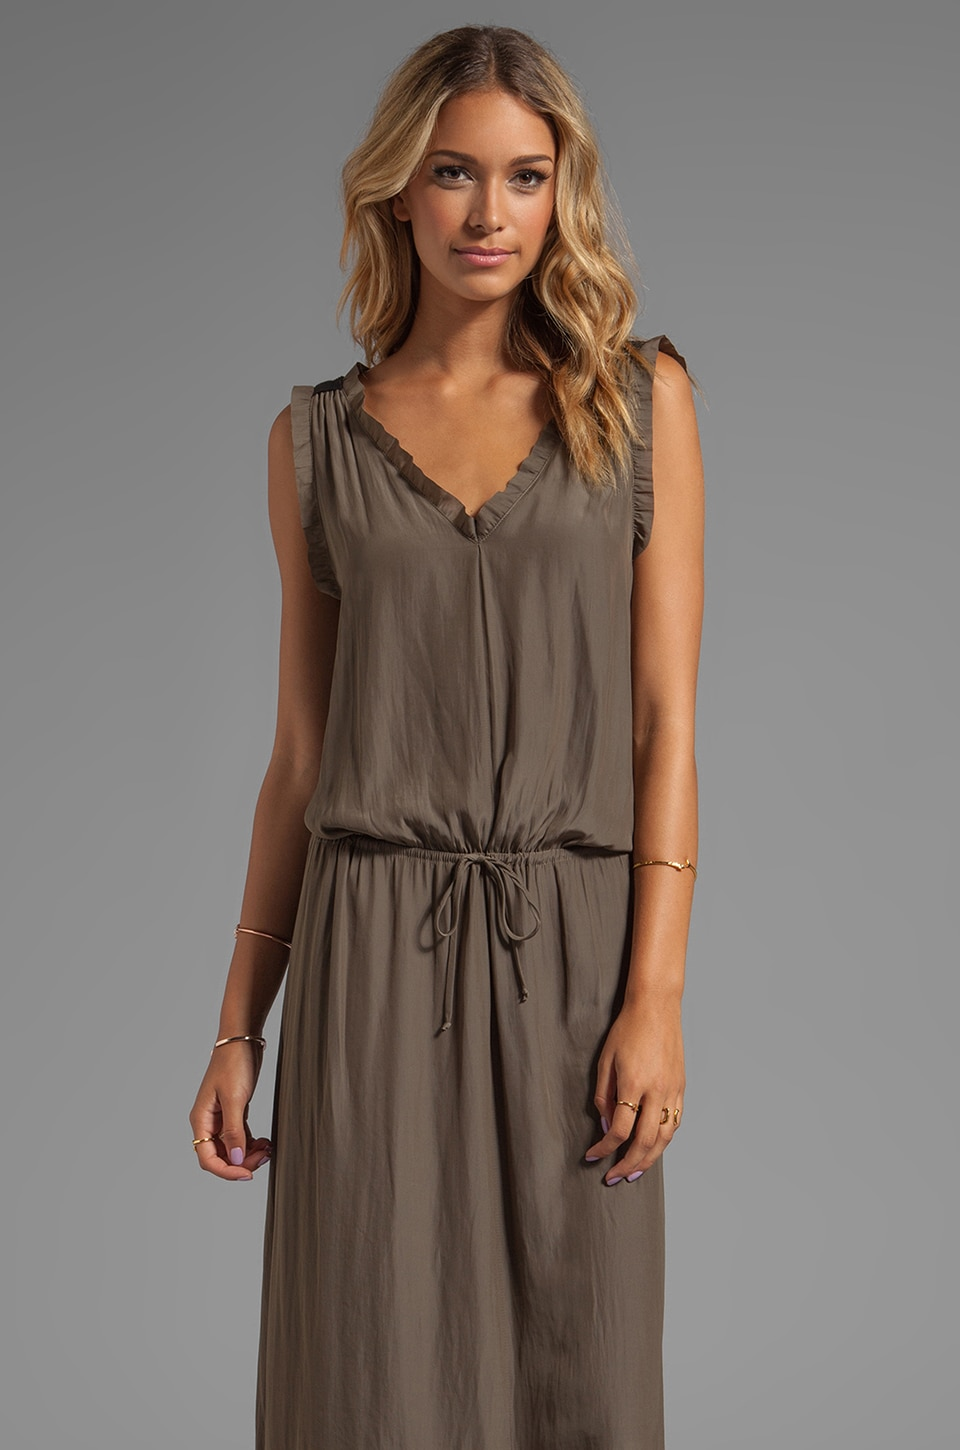 Feel the Piece Drawstring Cupro Dress in Army